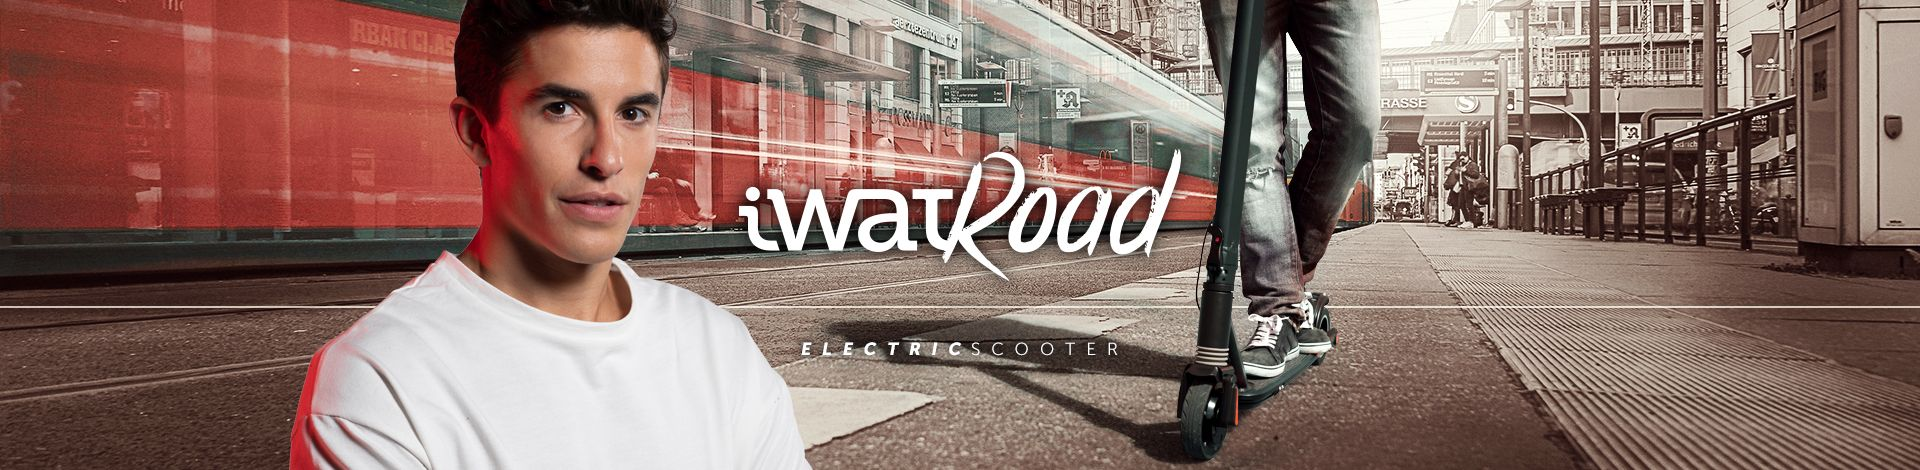 iWatRoad Electric Scooter